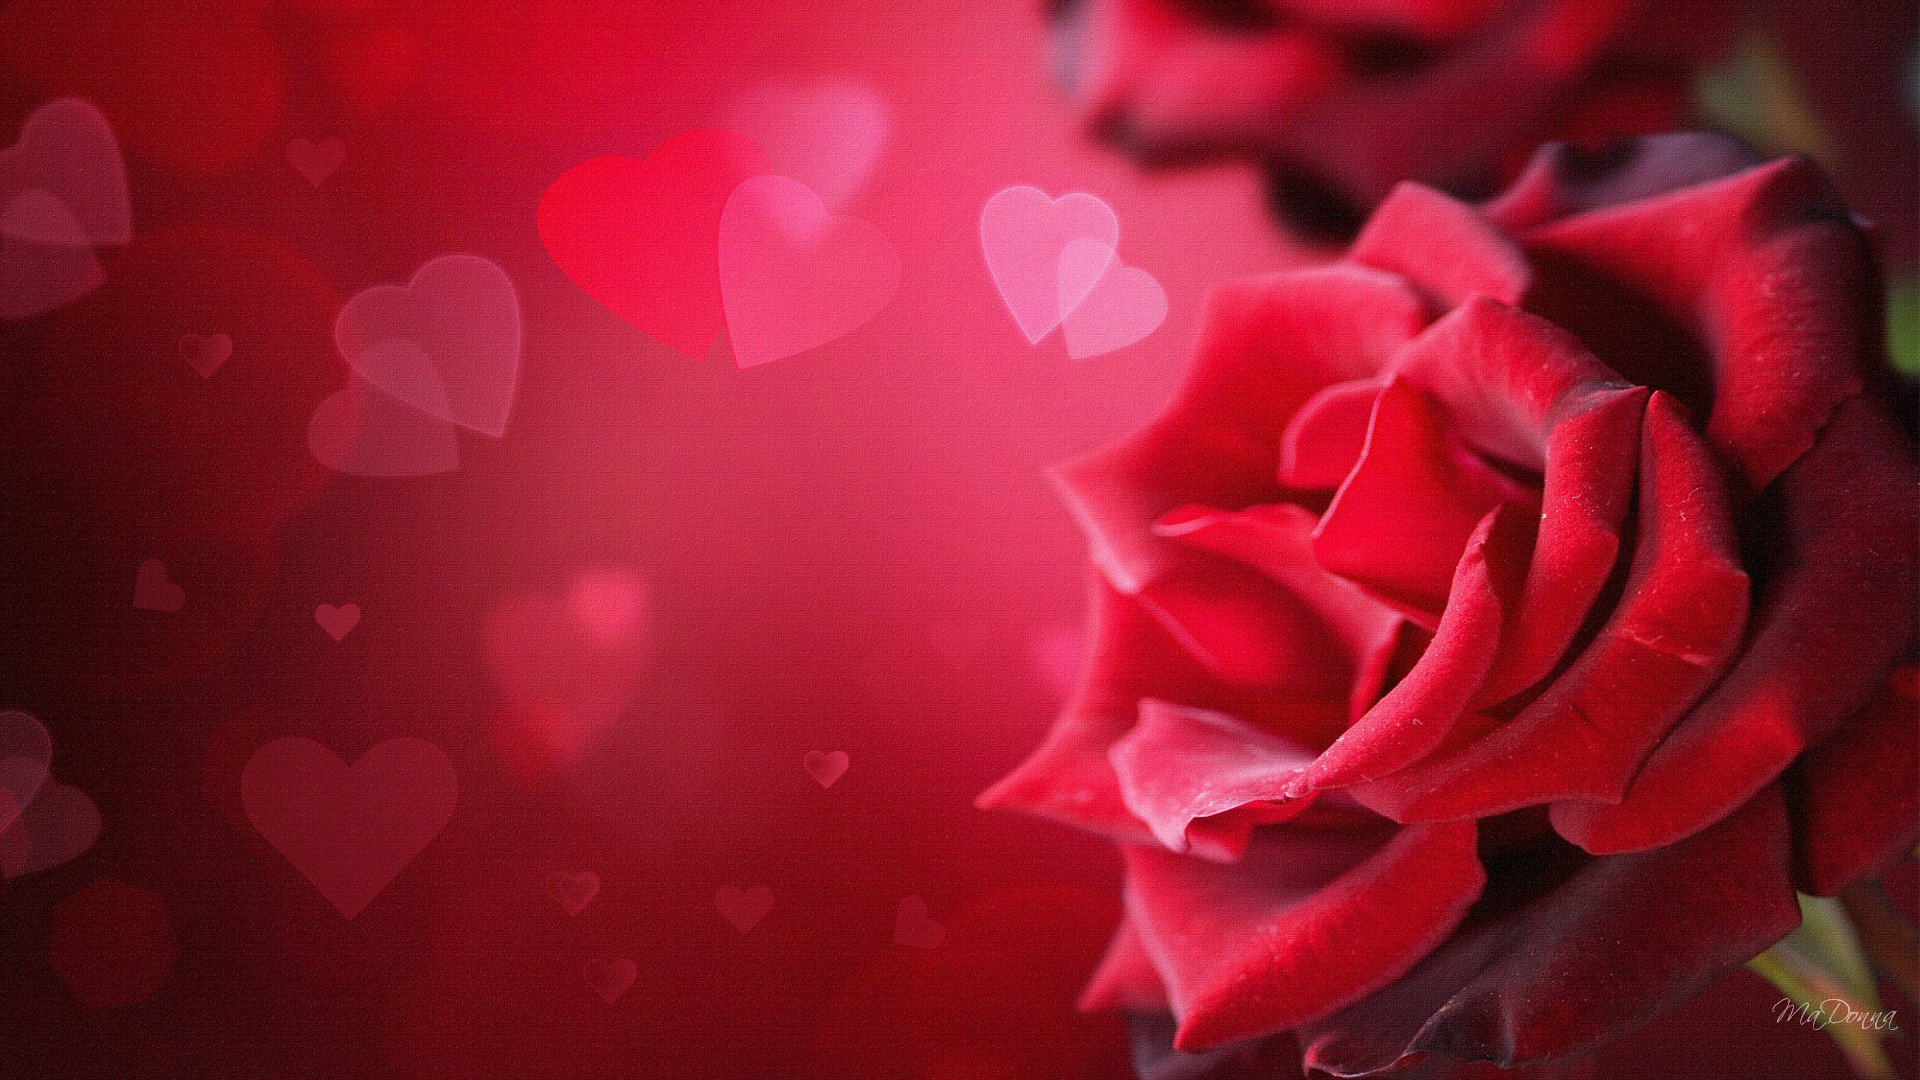 Valentines Day Desktop Wallpaper   Wallpaper High Definition High 1920x1080